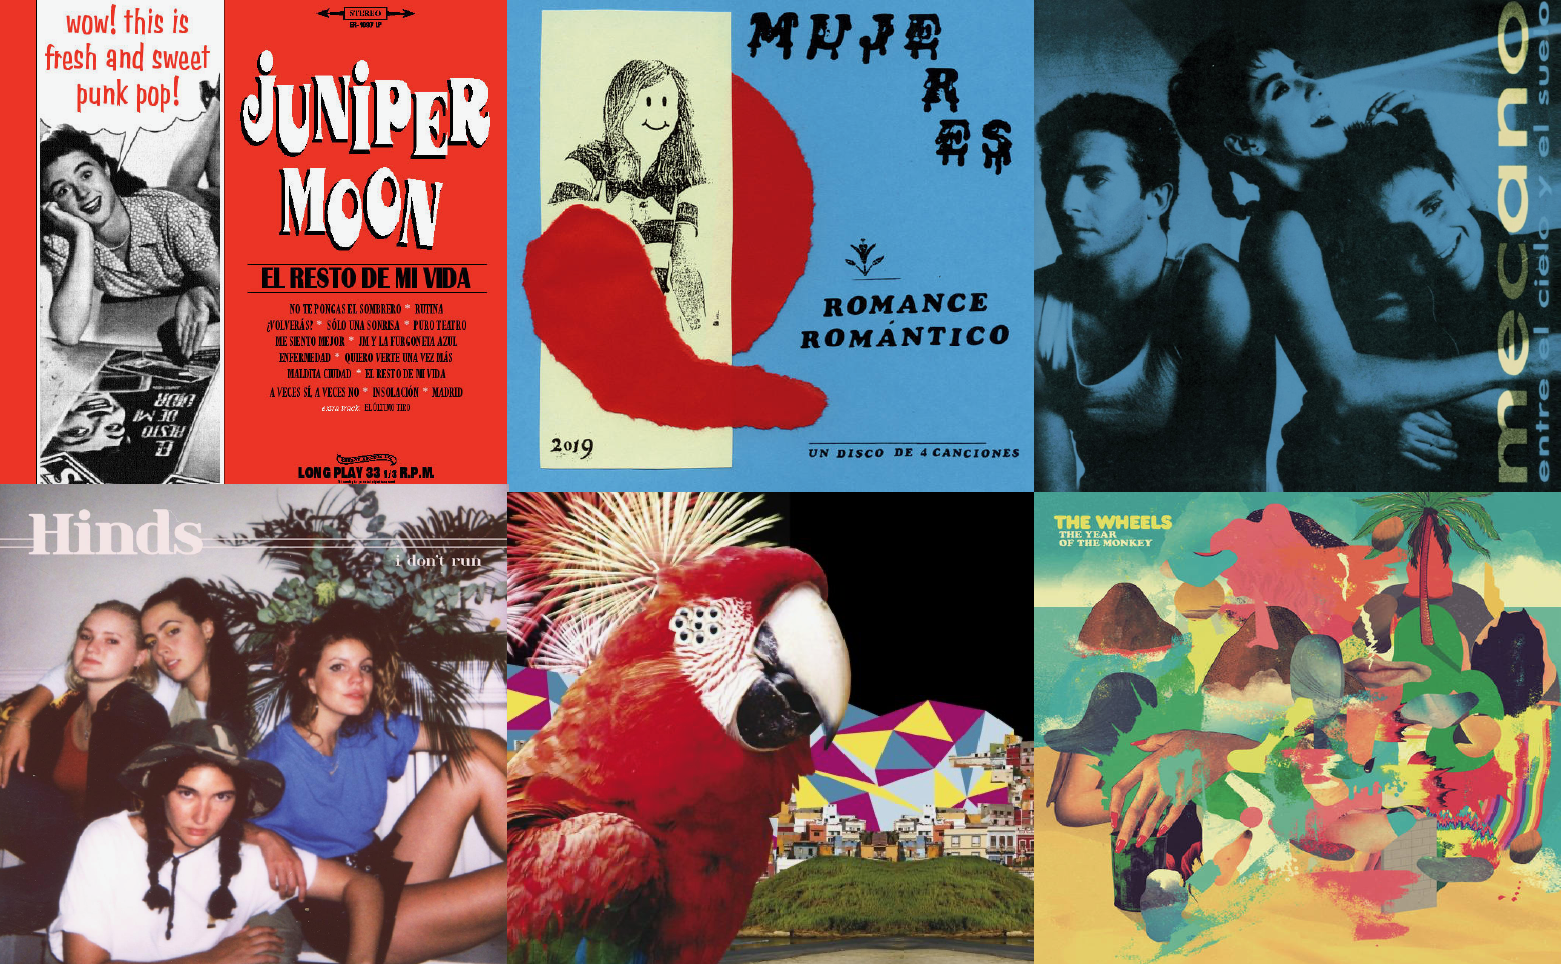 collage of albums of bands Juniper Moon, Mujeres, Hinds, El Guincho, Mecano, and The Wheels